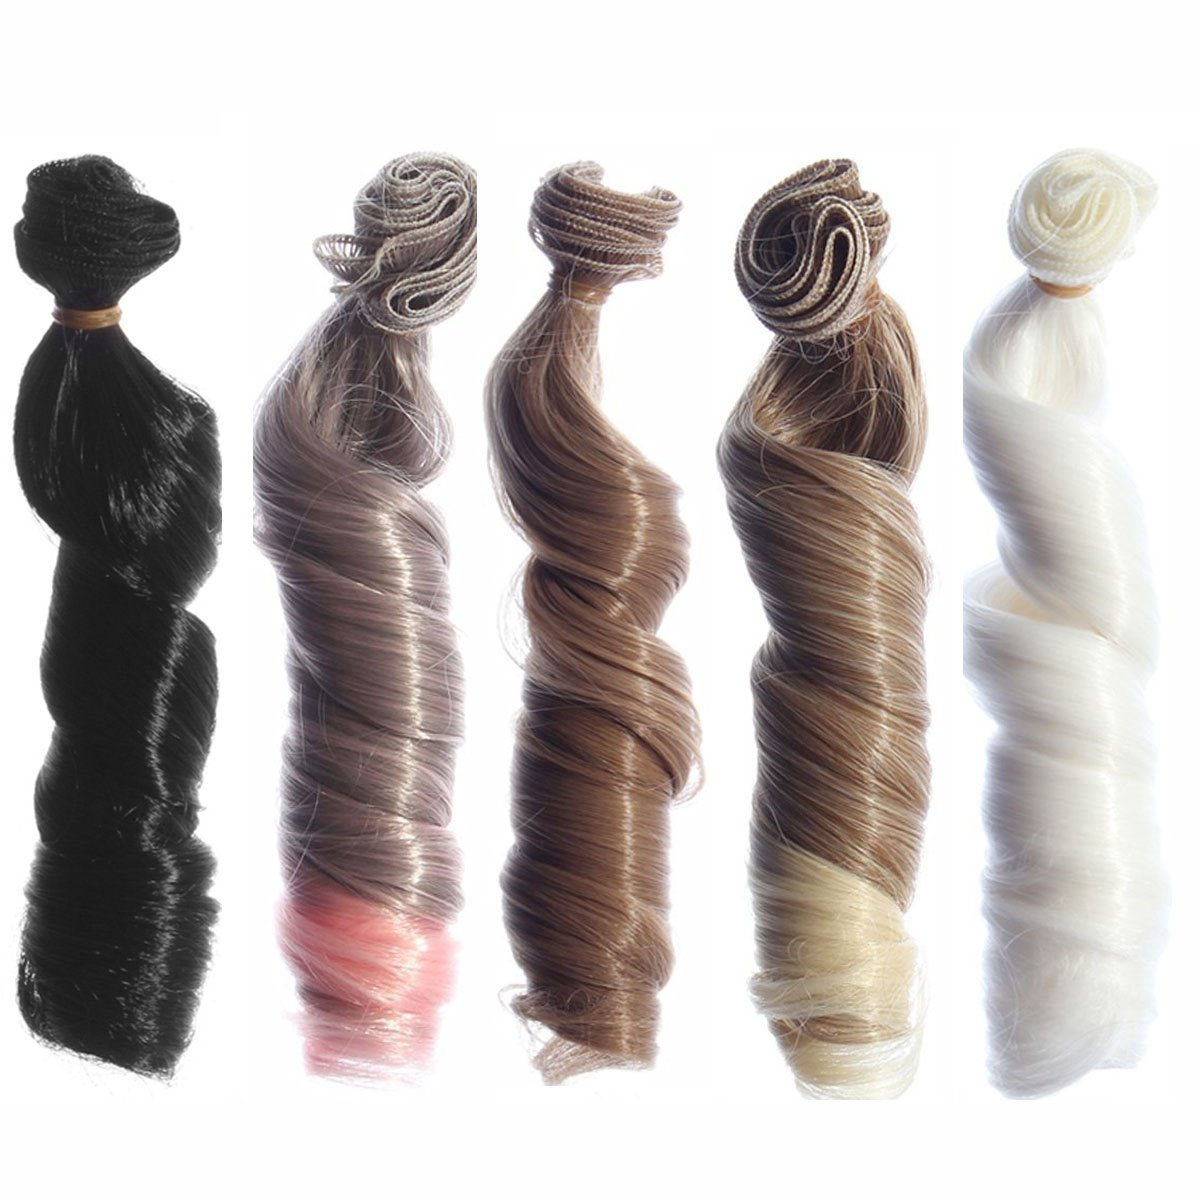 5pcs/lot,15x100cm Curly Heat Resistant Doll Hair Wefts for DIY Doll Wigs Different Colors for Choice (023-5pcs-01)